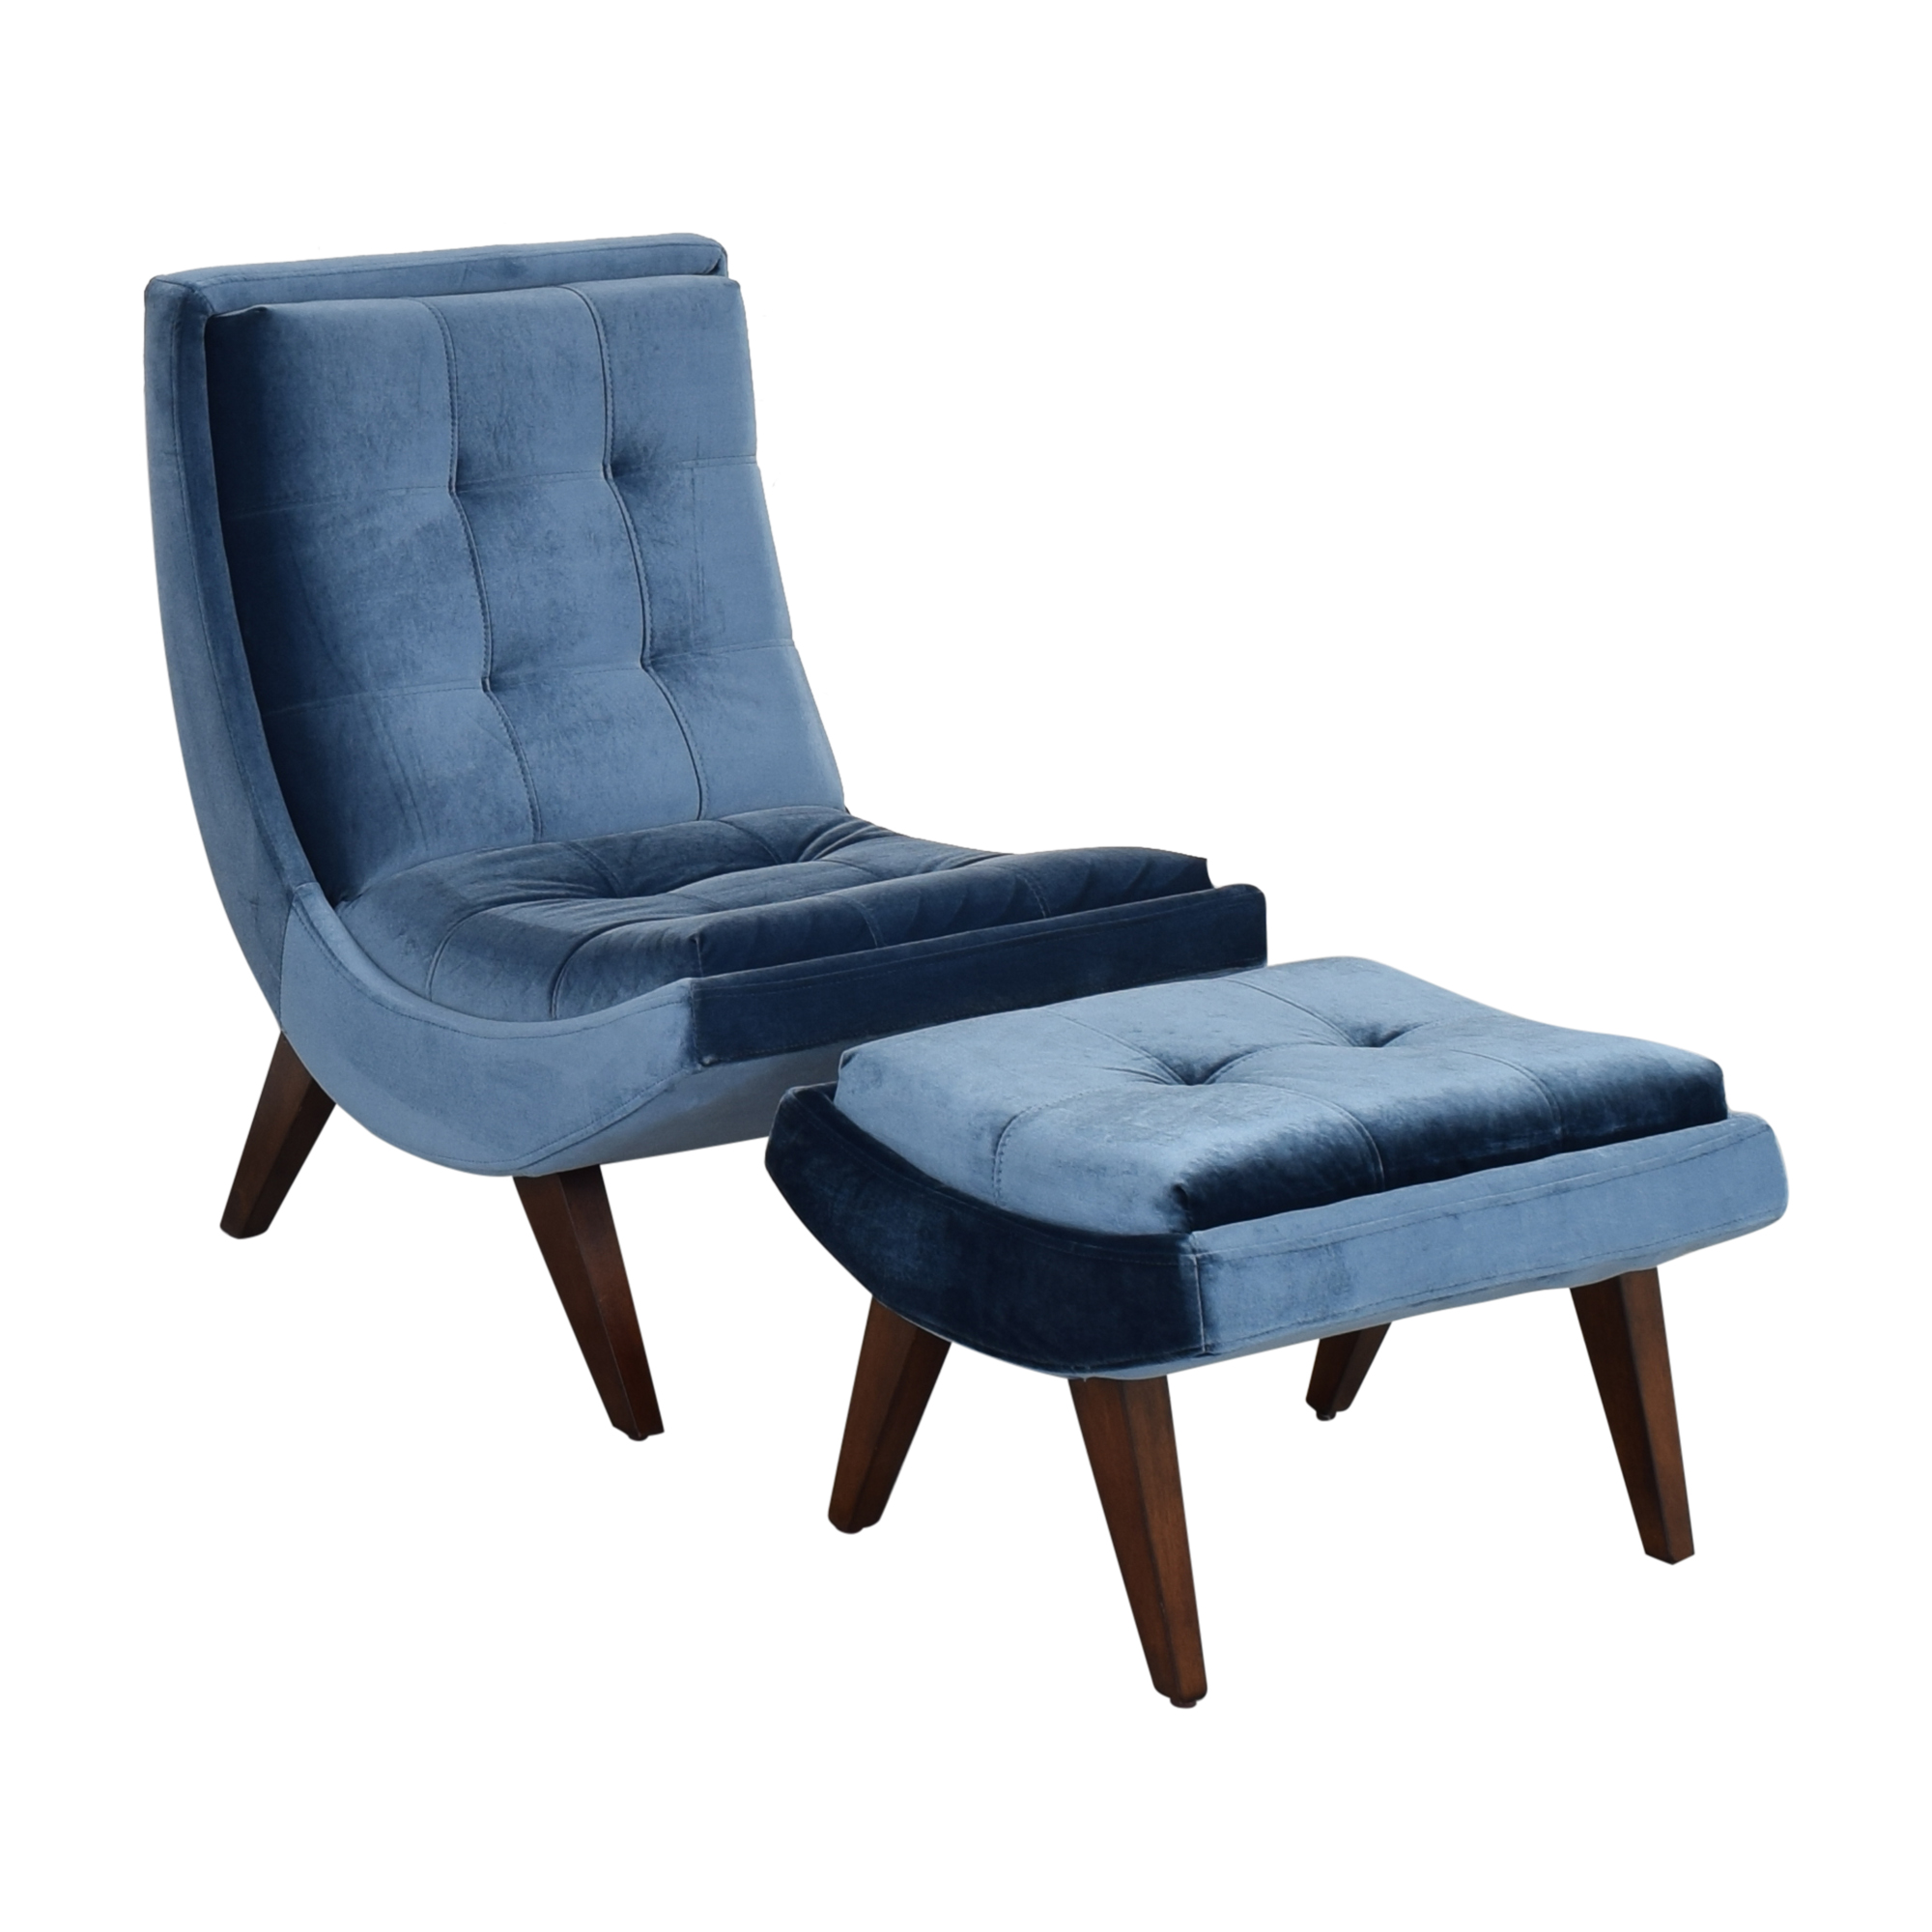 Modway Modway Lounge Chair and Ottoman discount